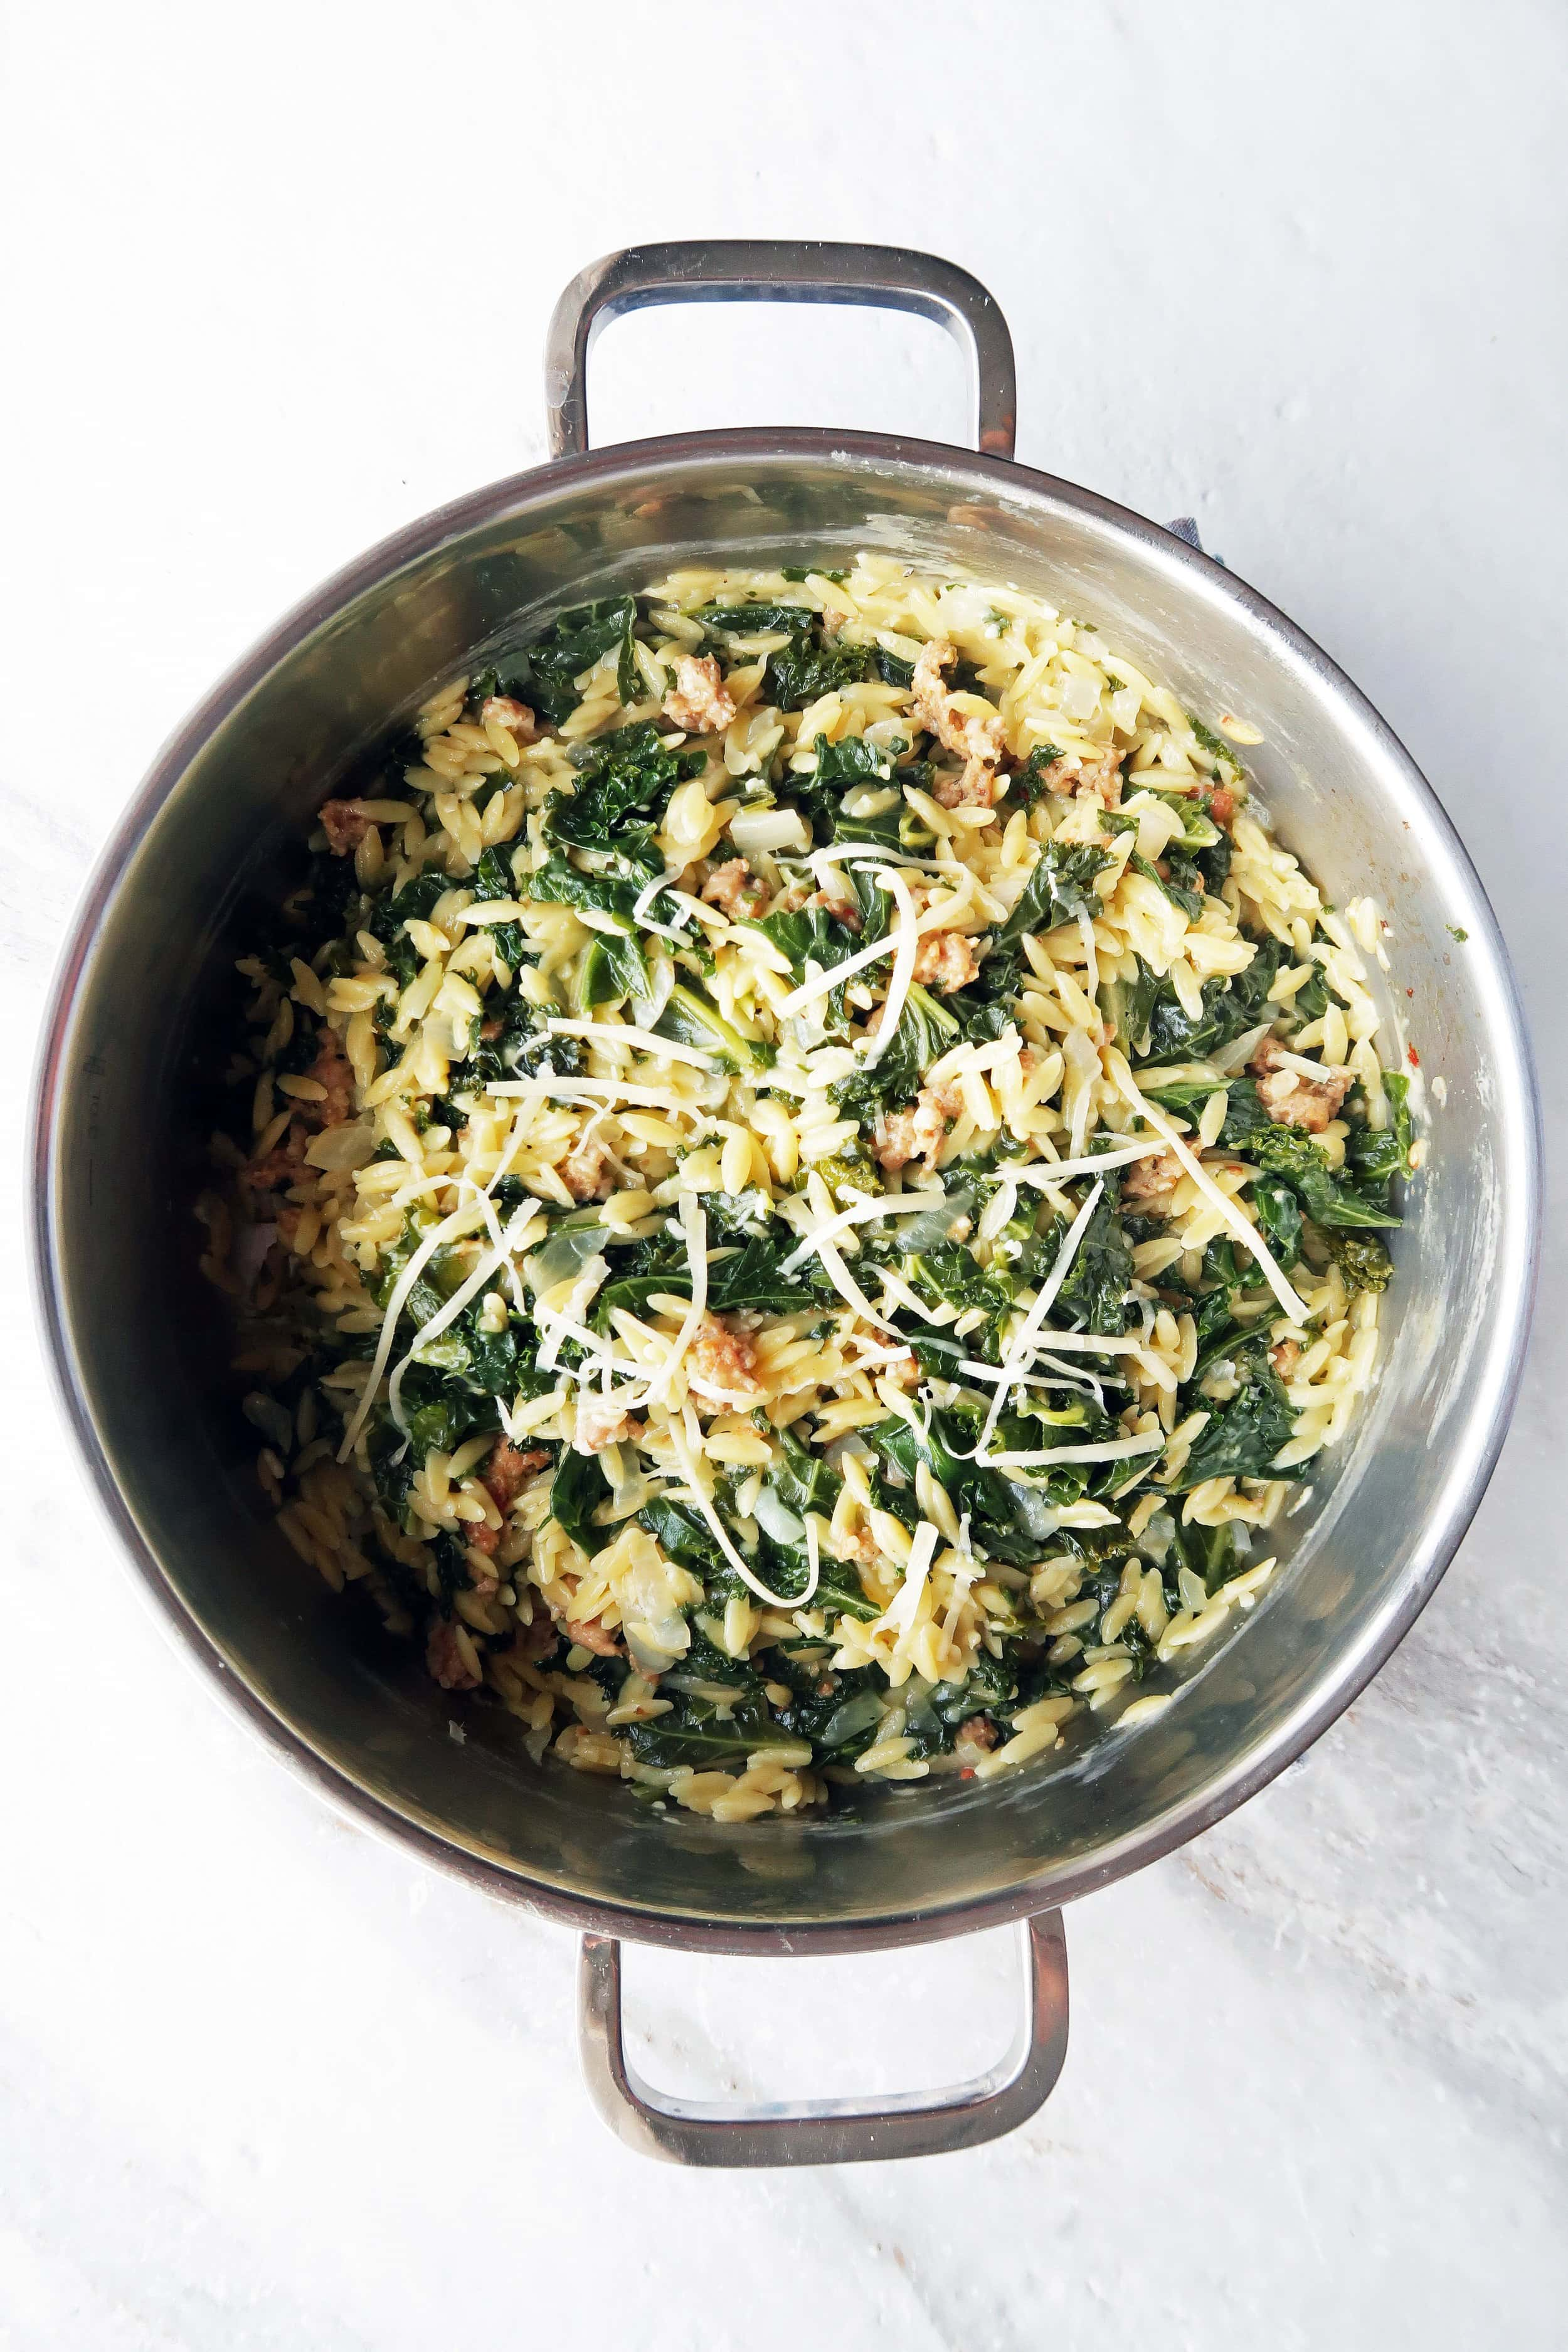 Orzo pasta with Italian sausage and kale with shredded cheese on top in a metal pot.